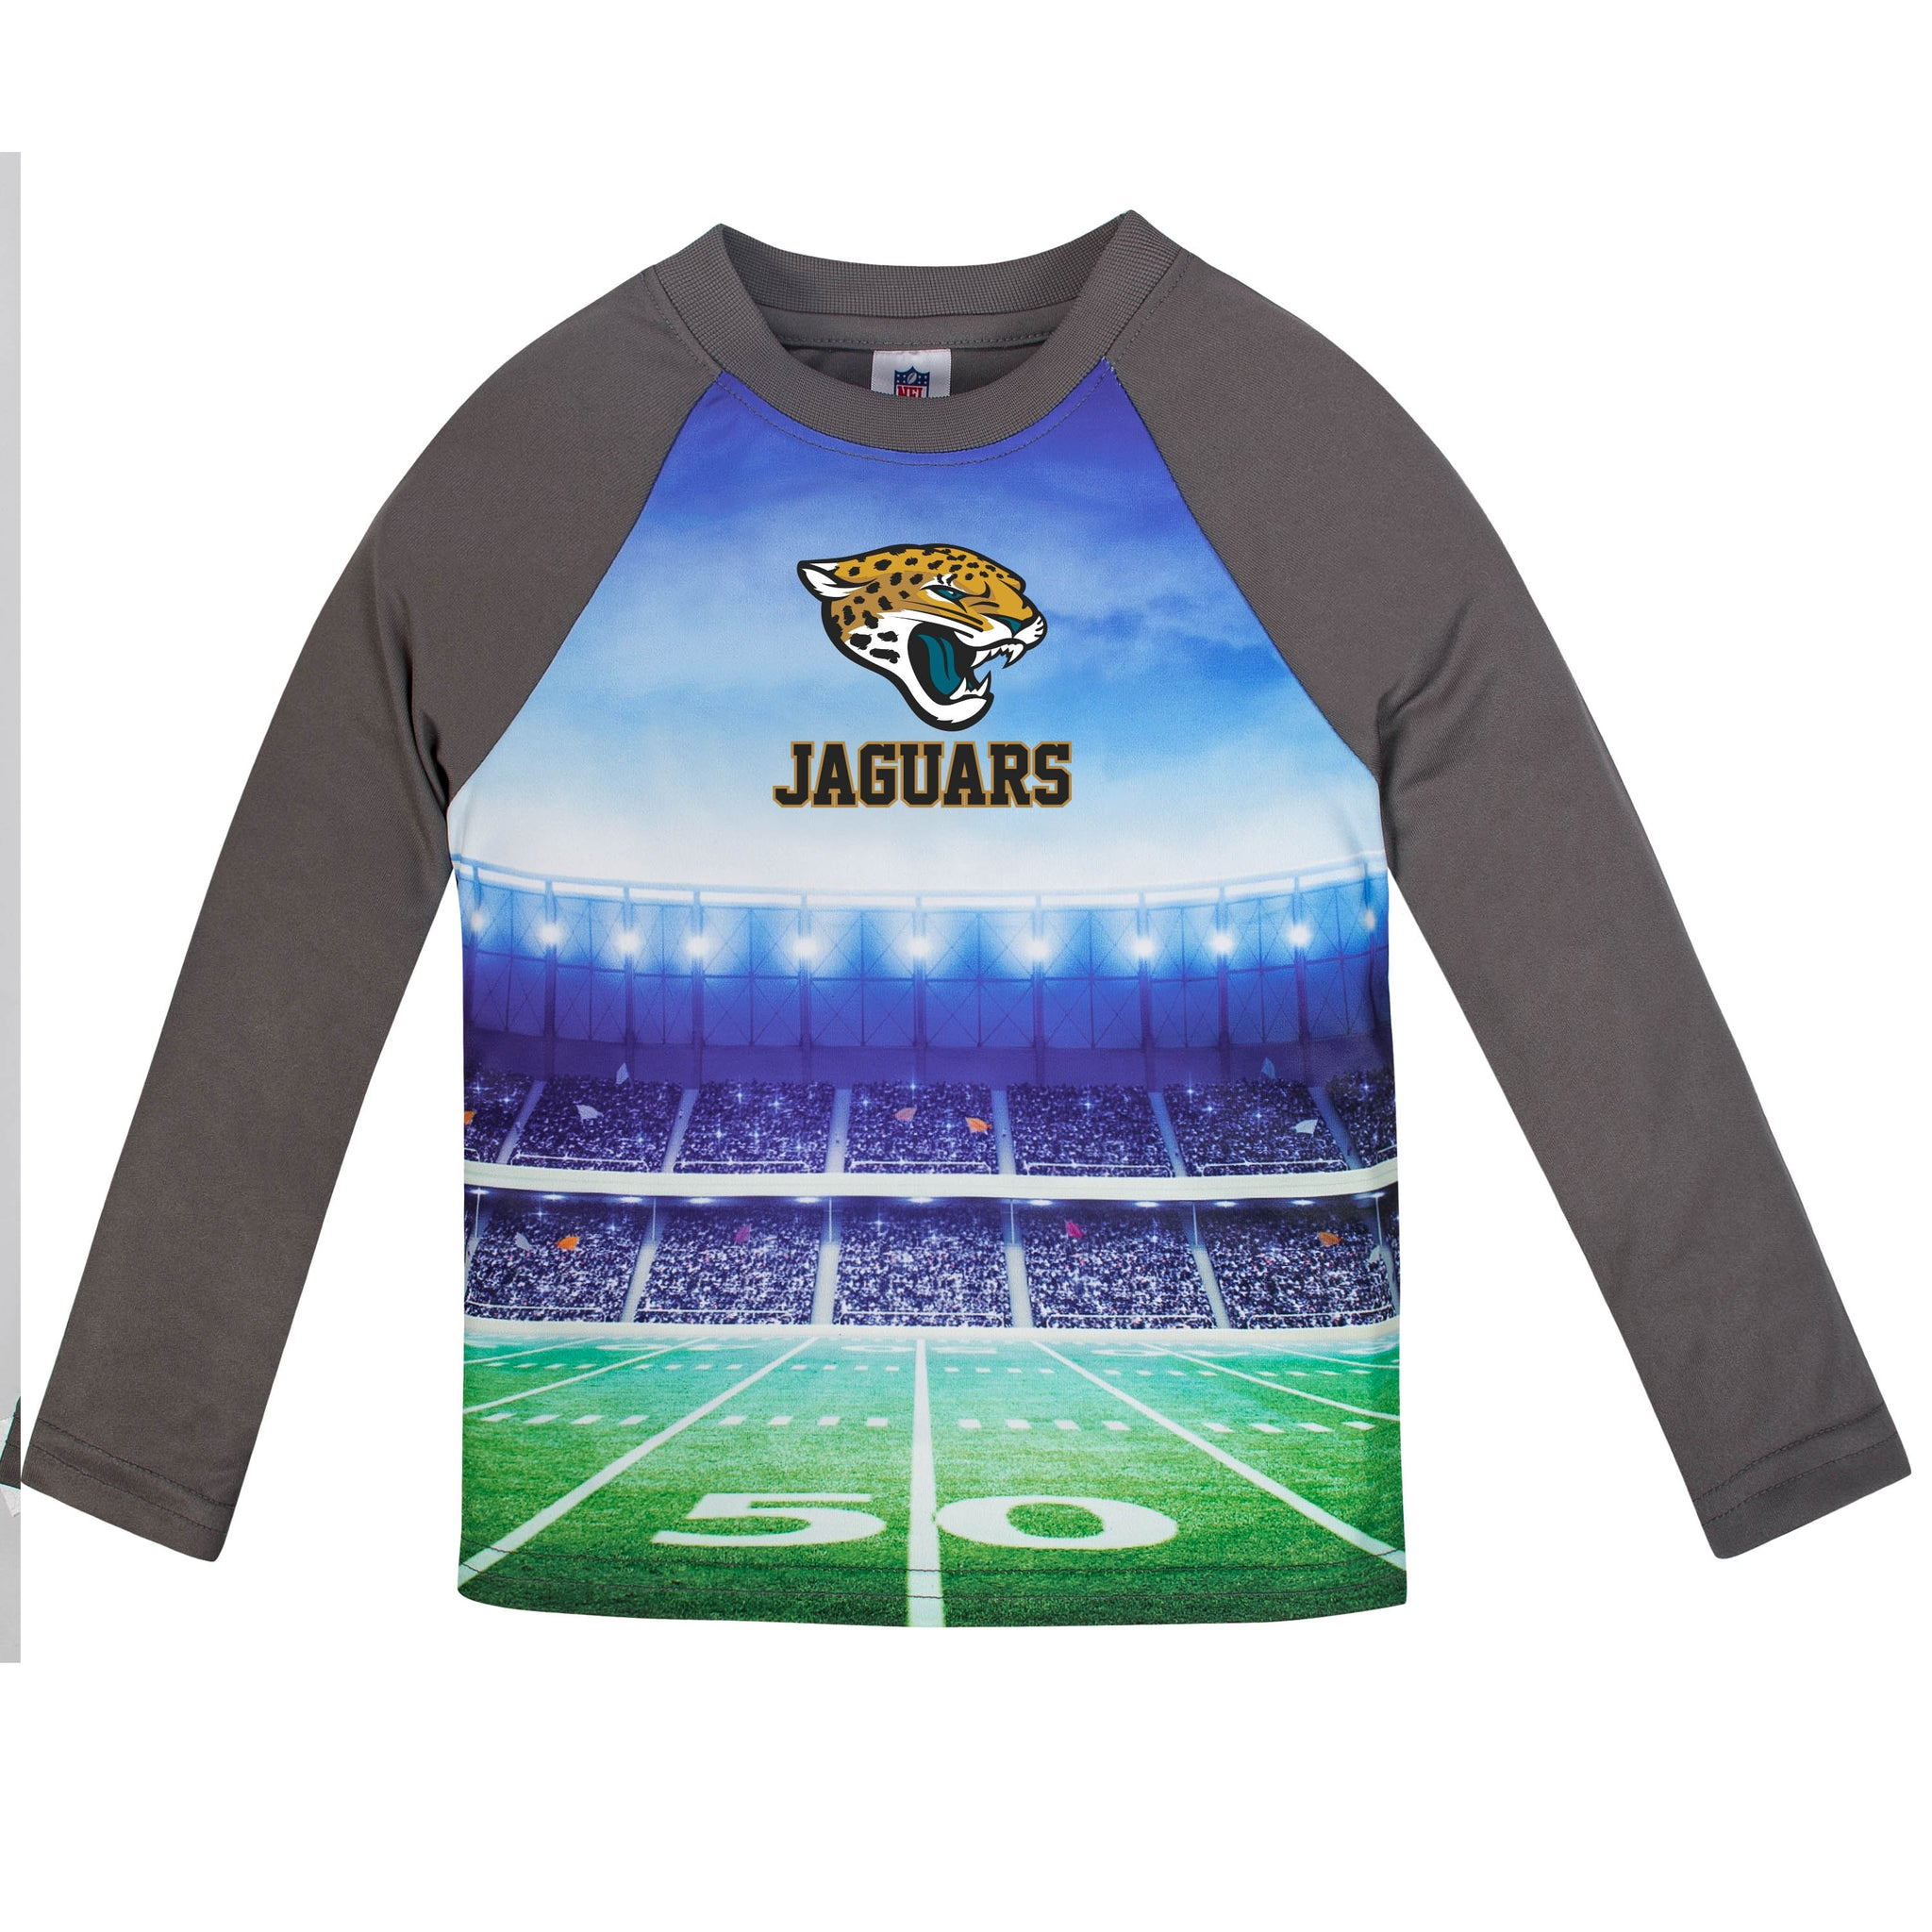 Jacksonville Jaguars Boys Long Sleeve Tee Shirt